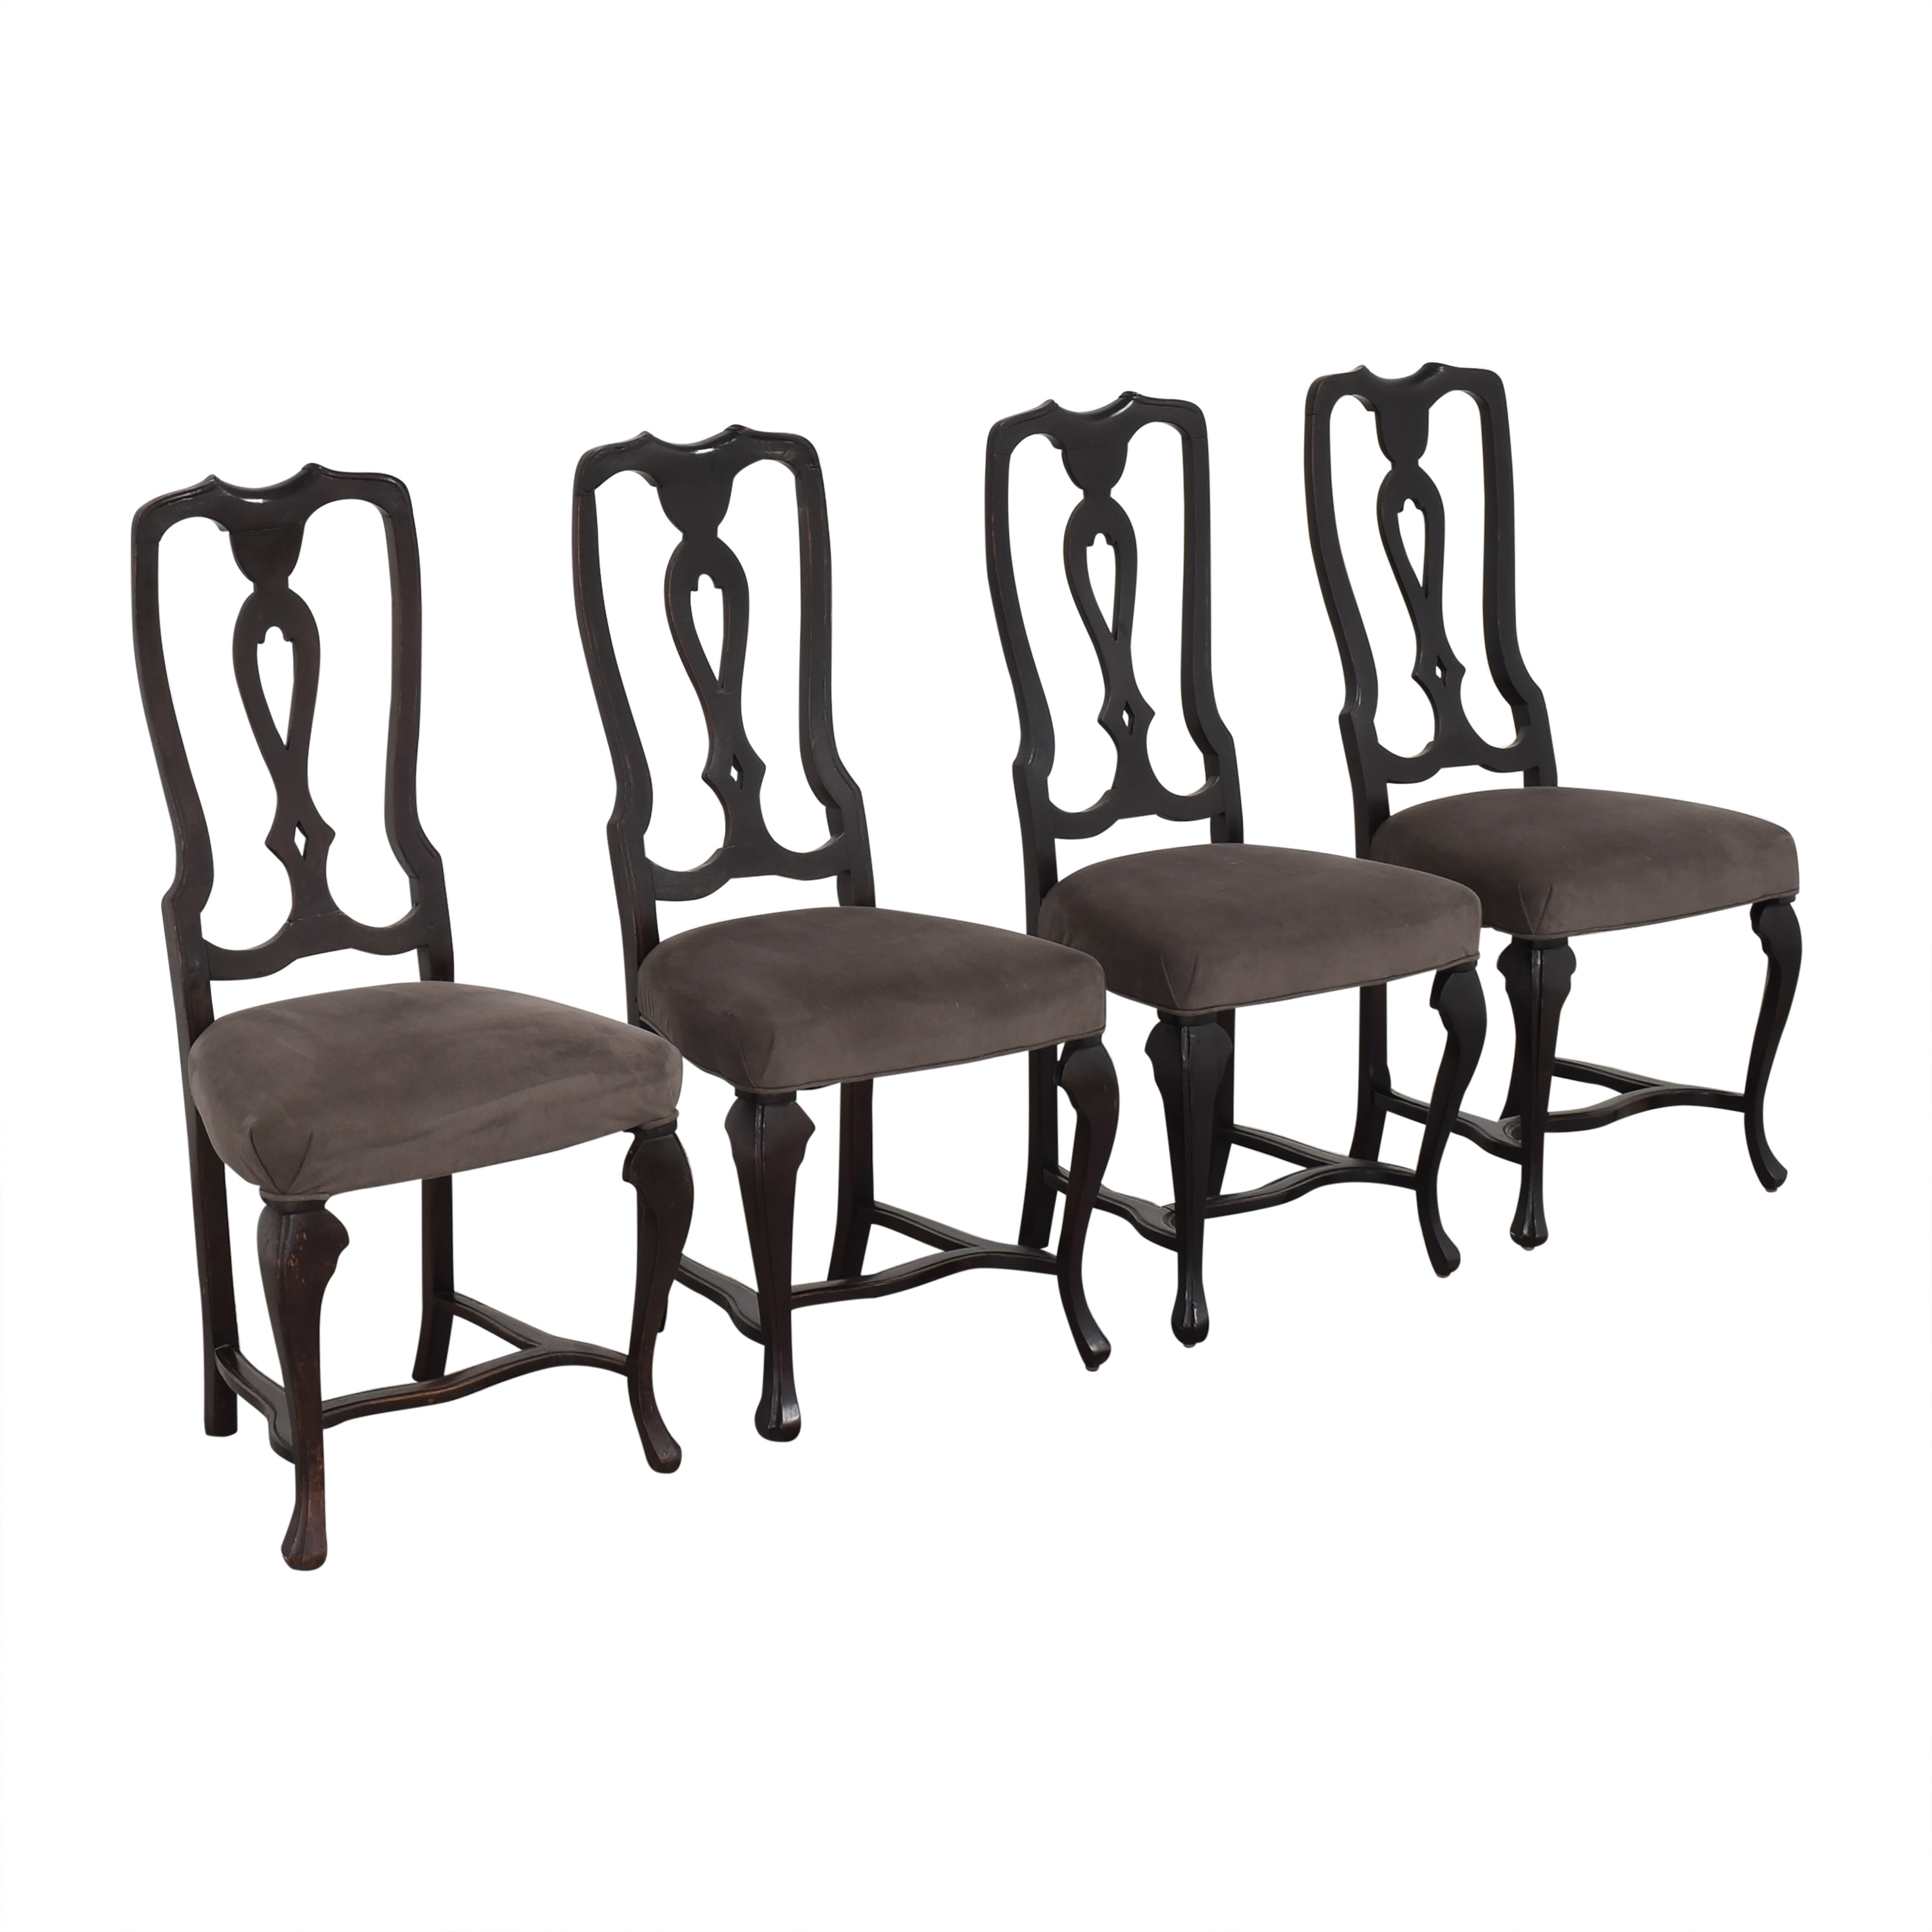 buy Antique Upholstered Dining Chairs  Dining Chairs